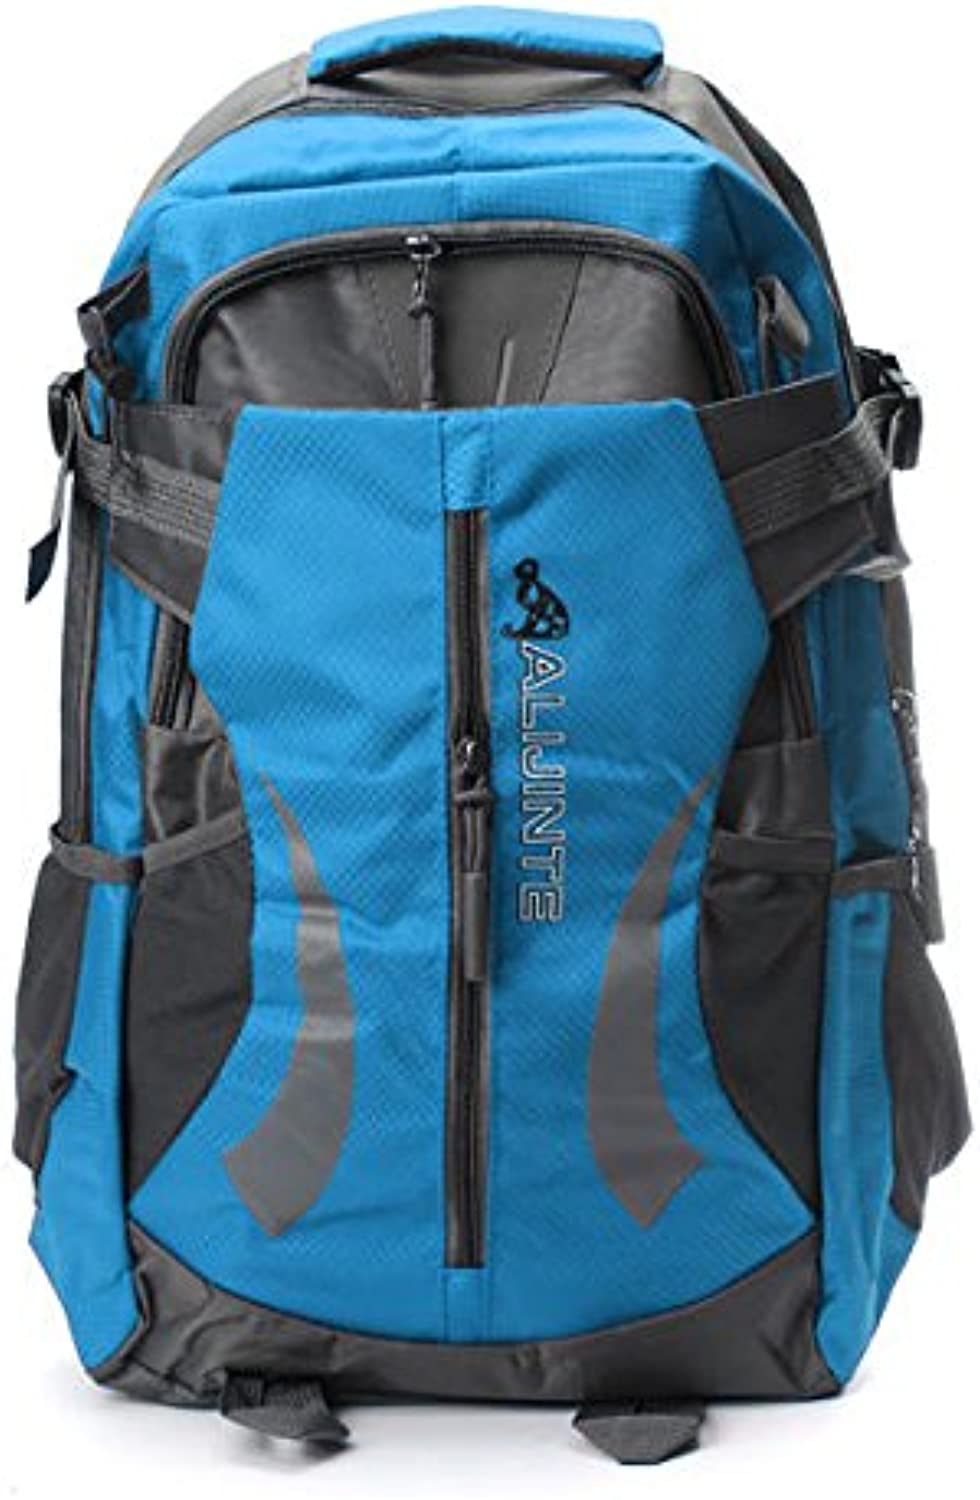 Anddod 40L-45L Outdoor Camping Traveling Mountaineering Hiking Backpack